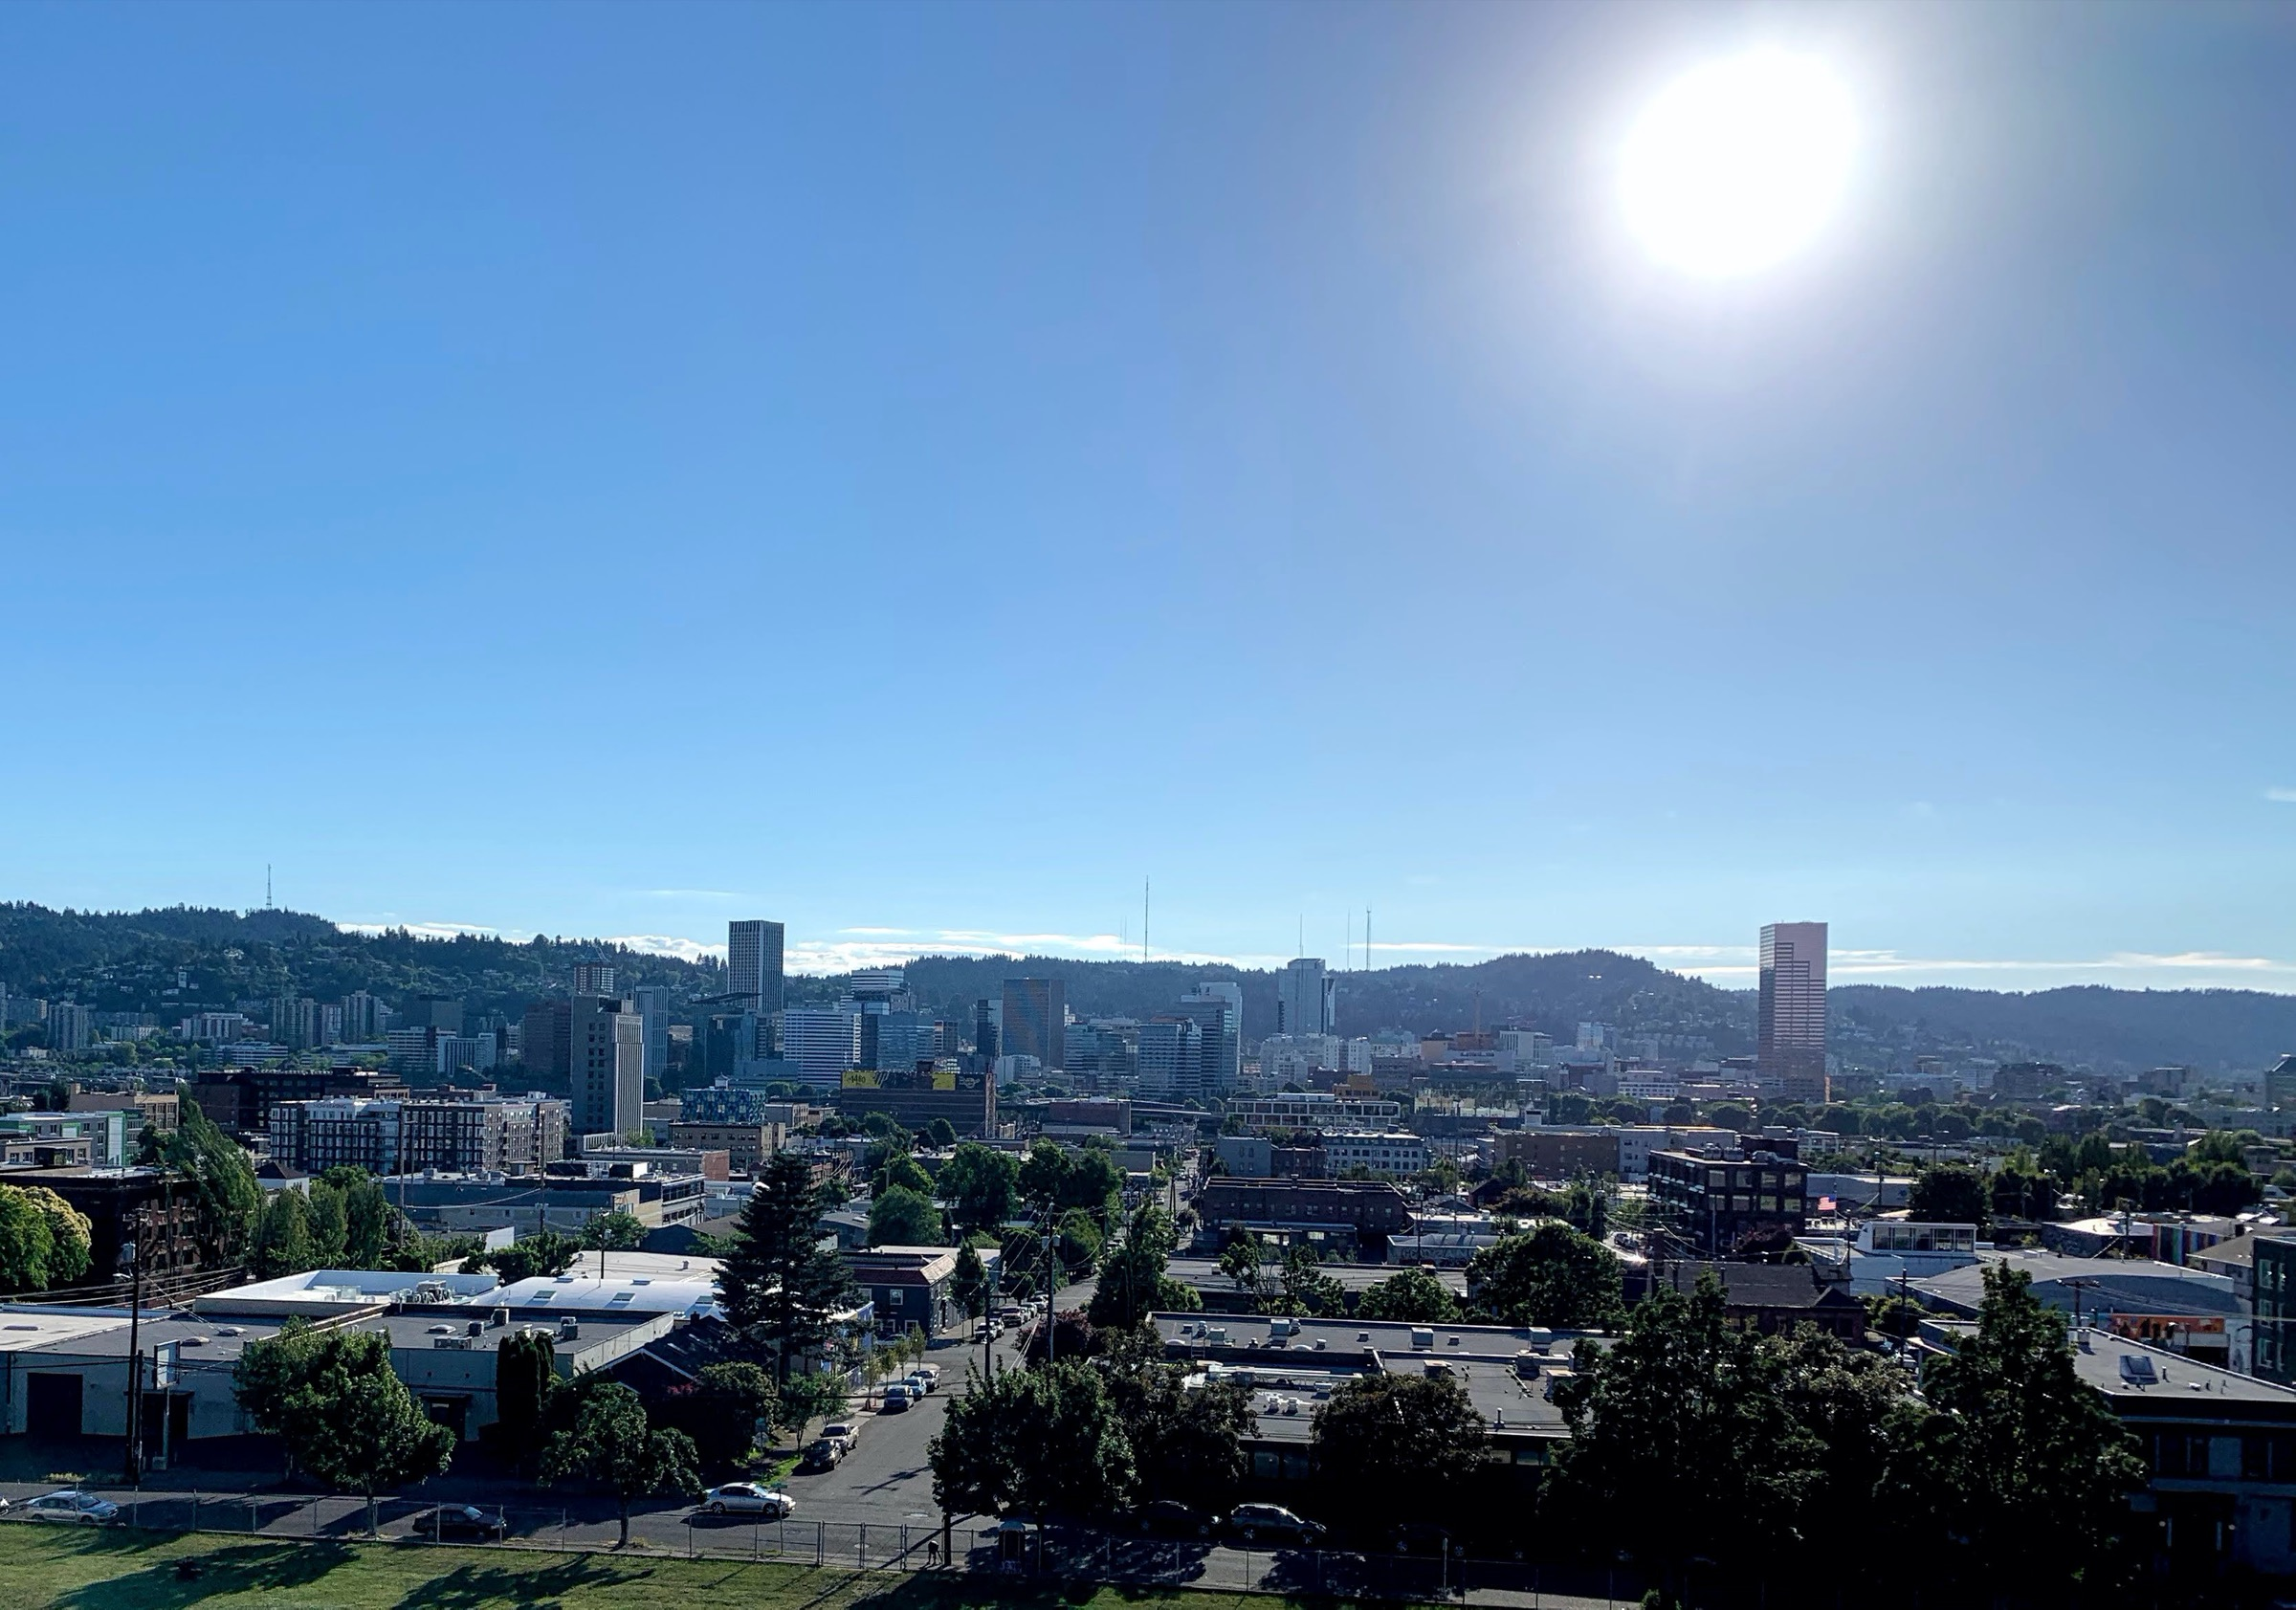 a clear hot day looking at downtown portland with mountains in the distance with the sun in frame